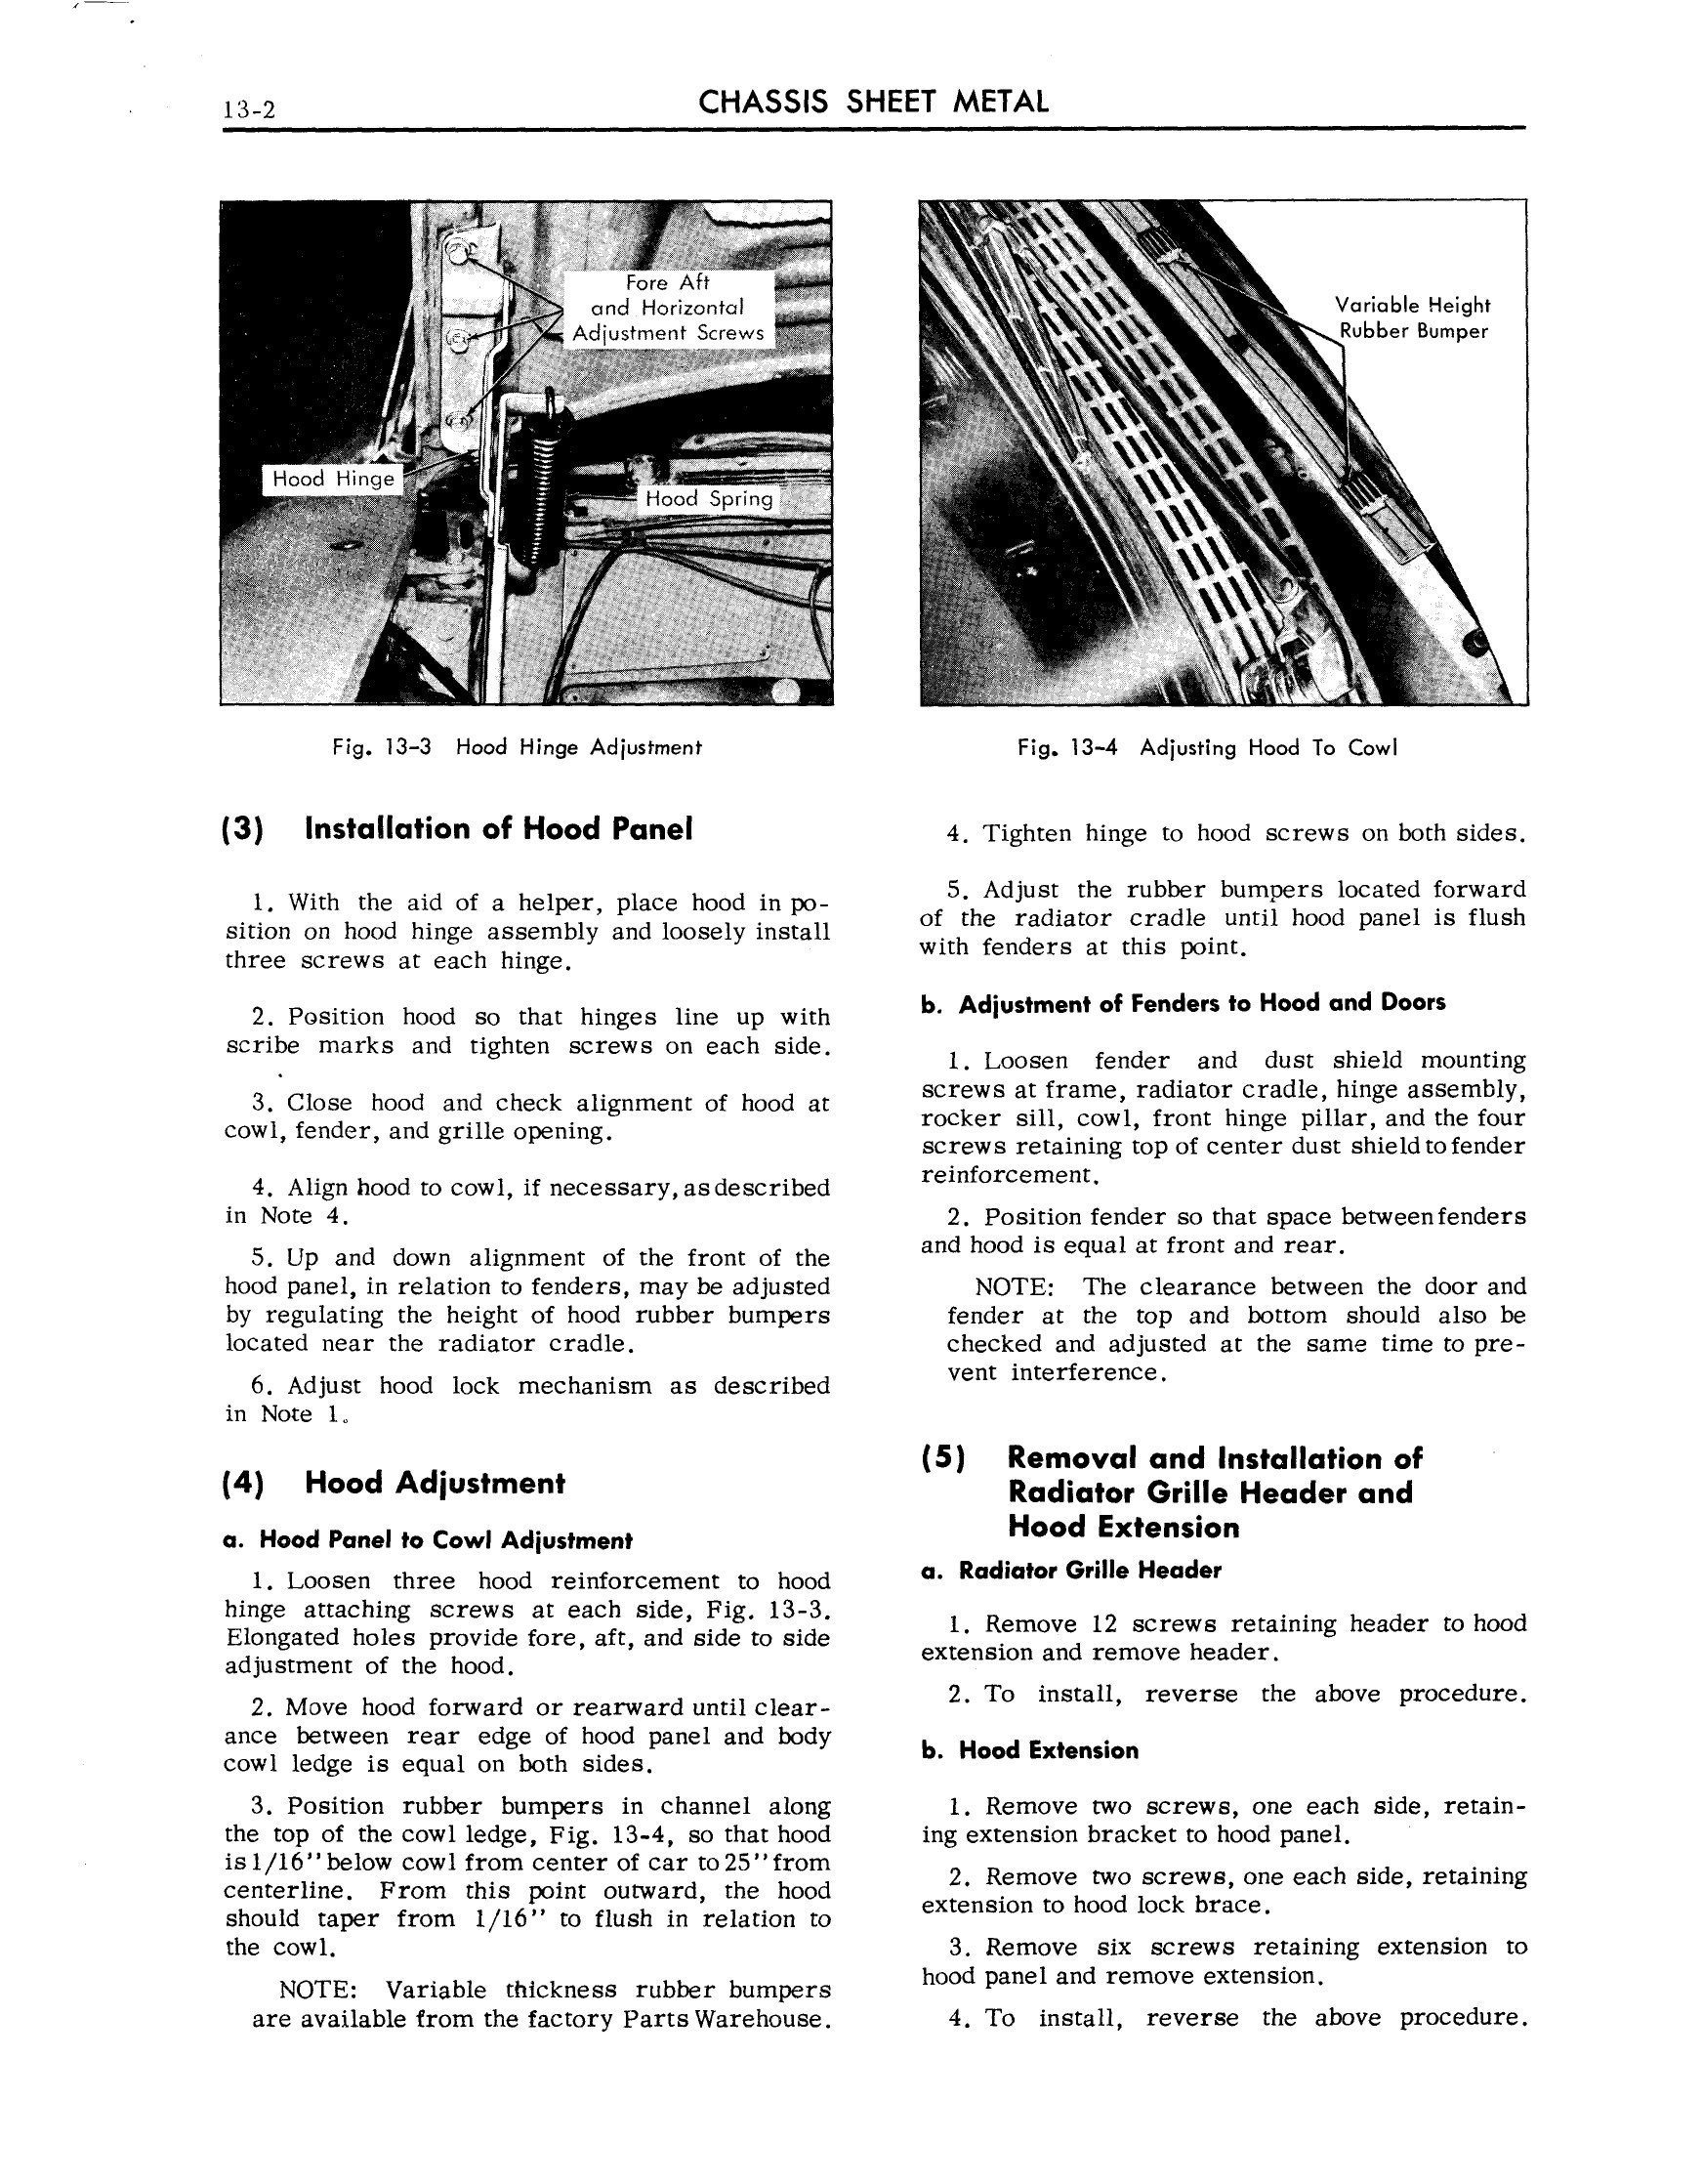 1959 Cadillac Shop Manual- Chassis Sheet Metal Page 2 of 7